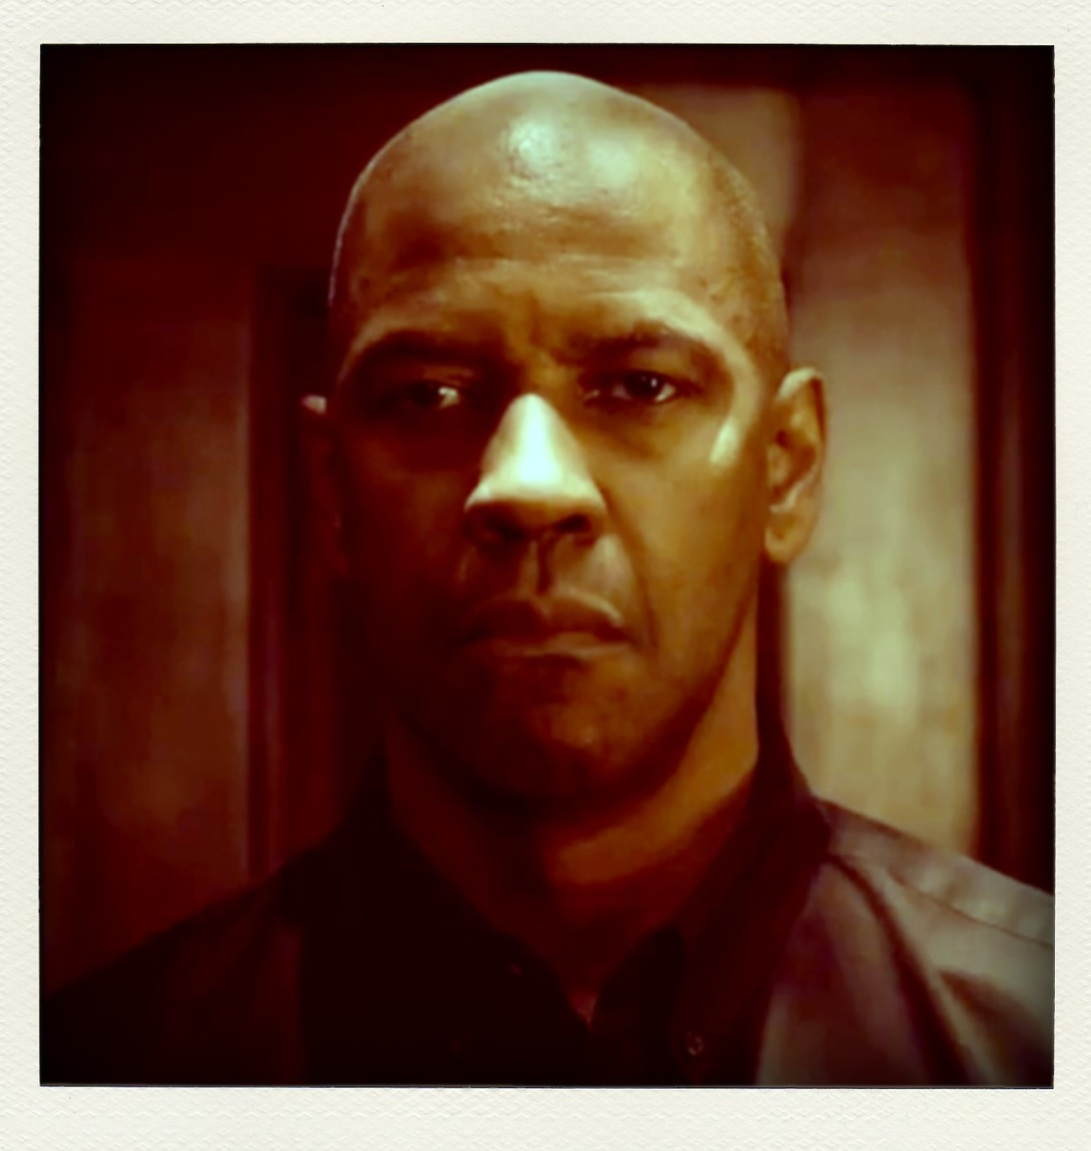 The Equalizer @ www.cinemascream.co.uk